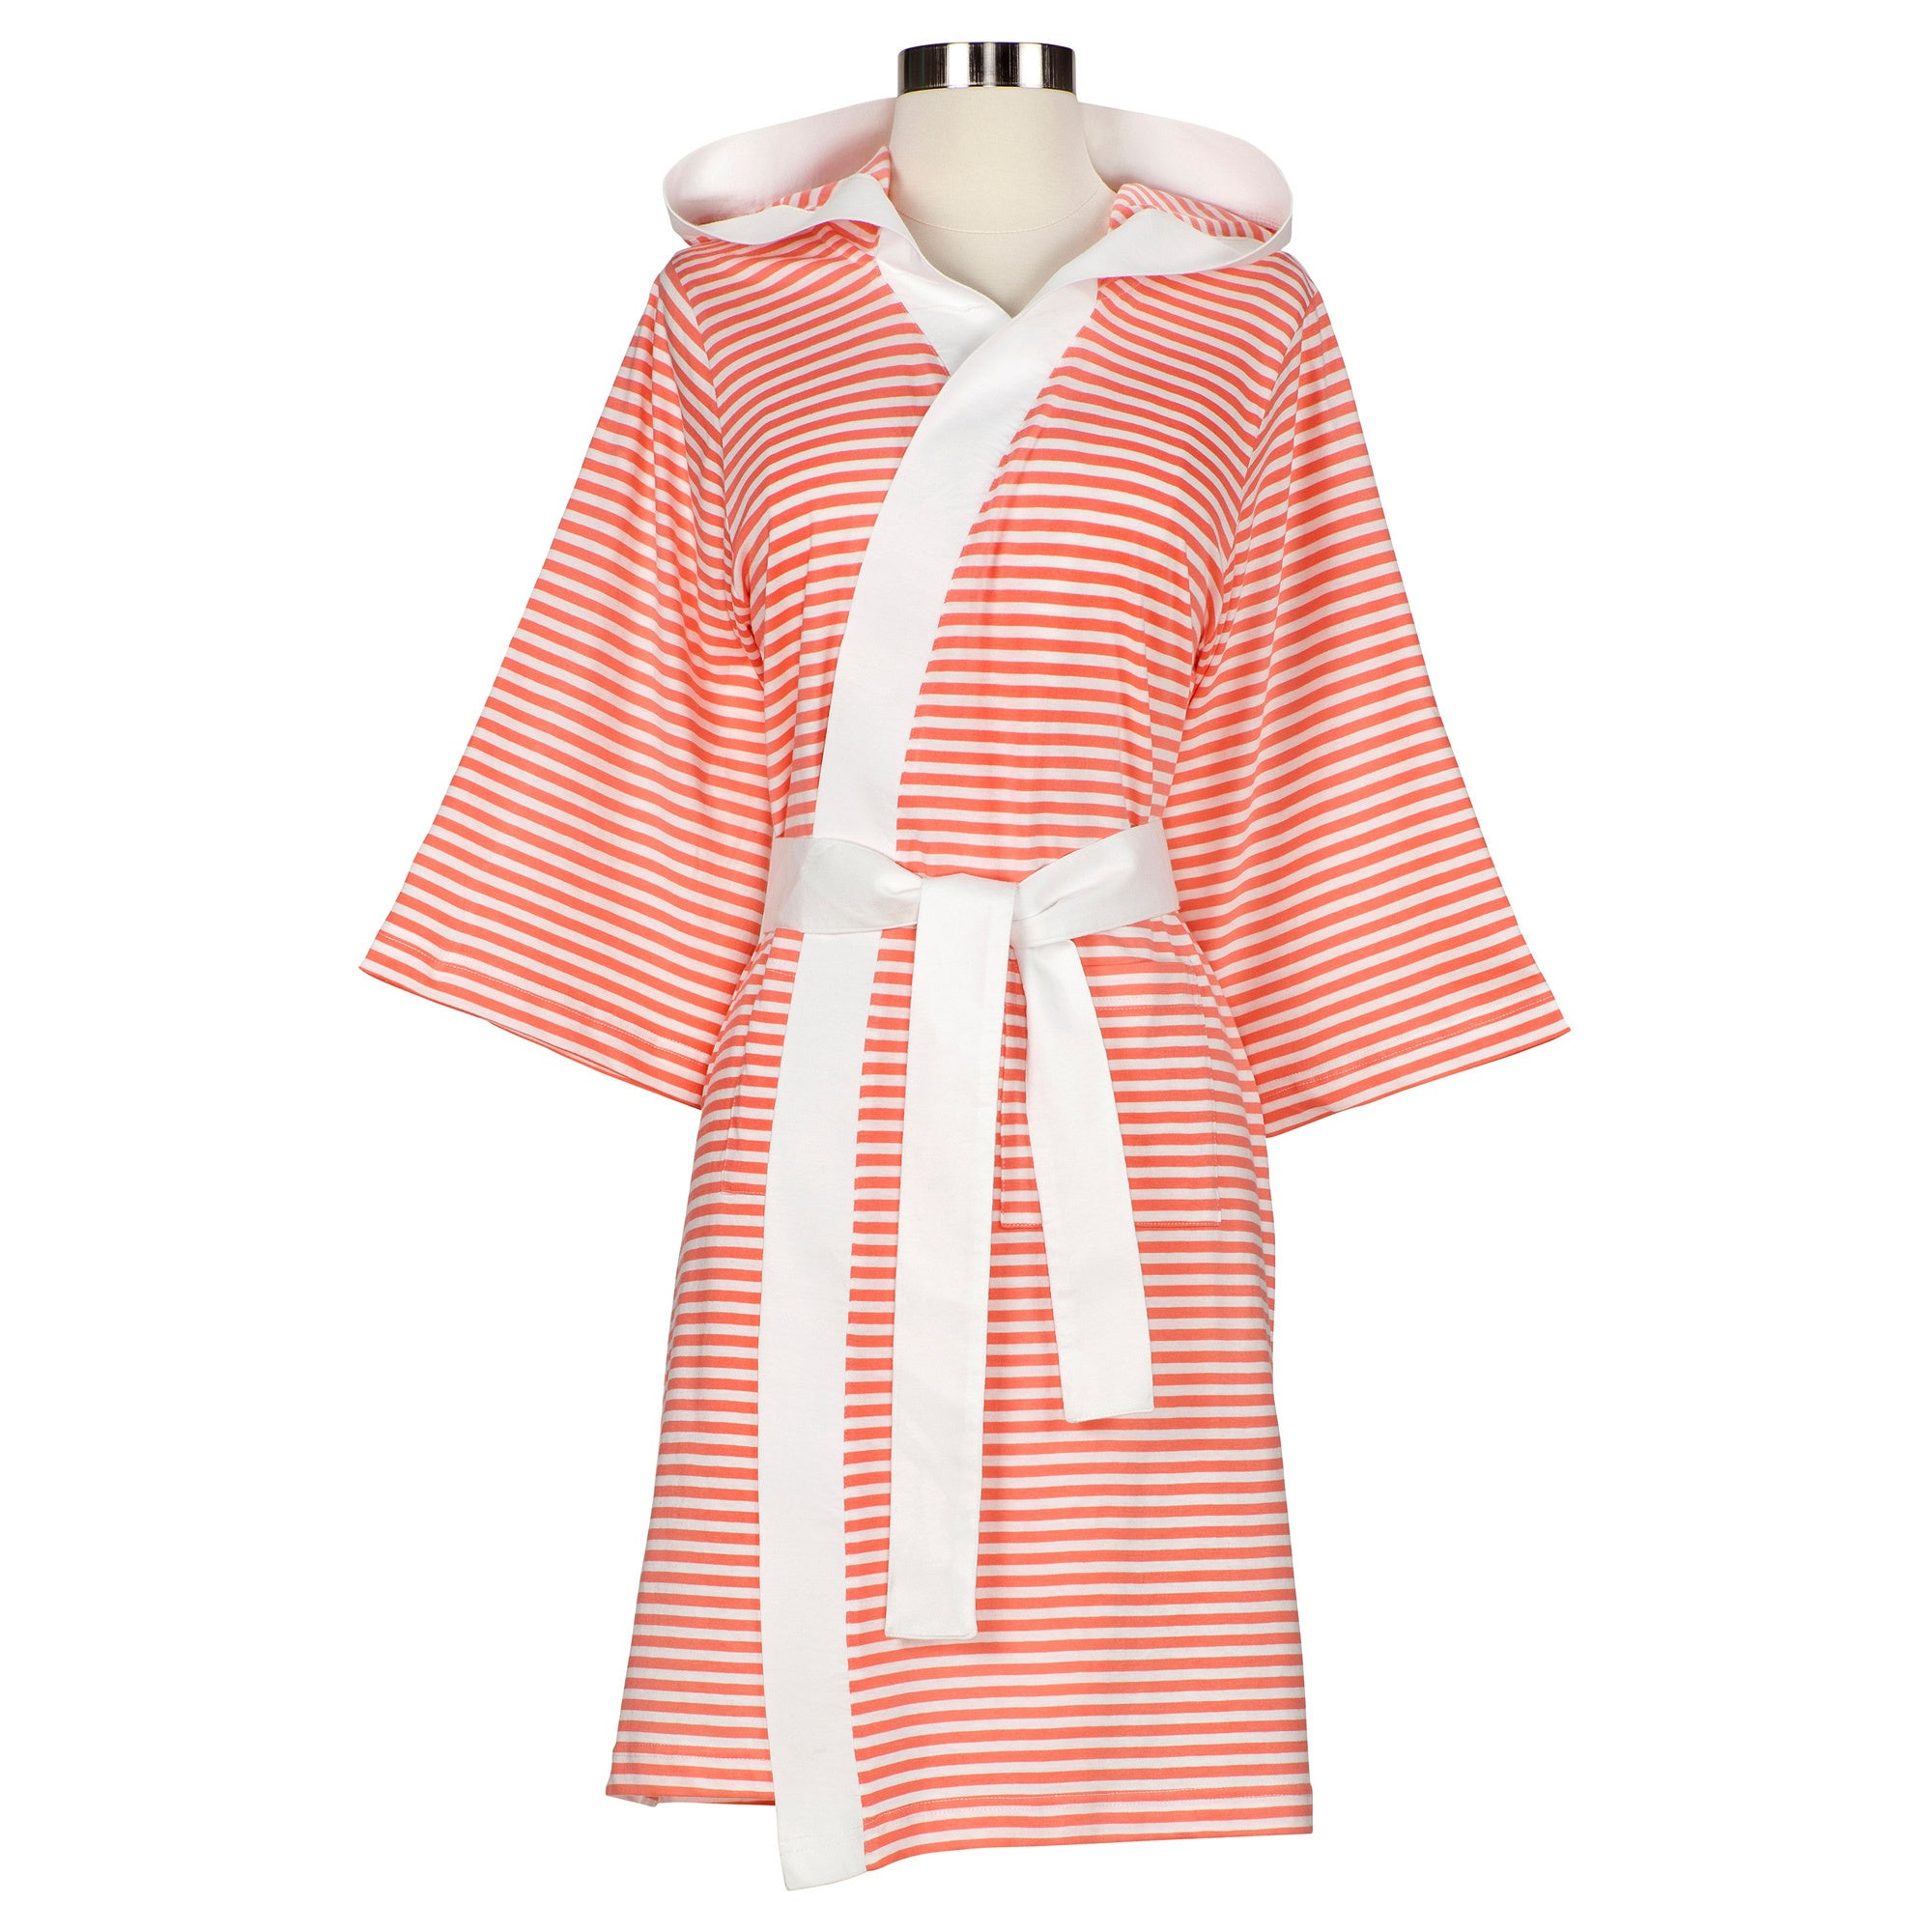 Global Women's Organic Cotton White and Rose Stripe Bath ...